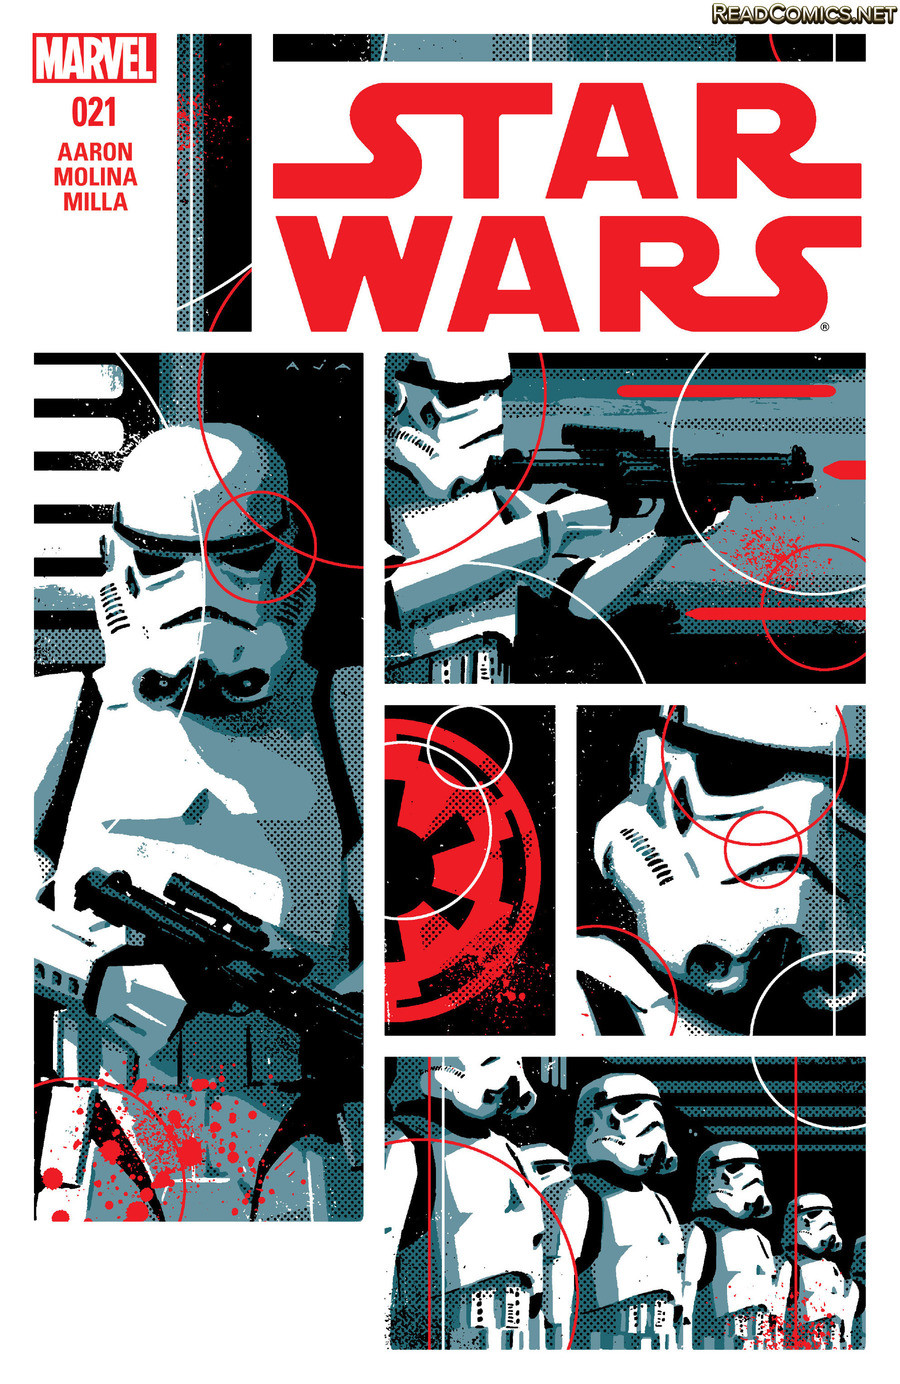 Star Wars Stormtrooper Task force 99. So im going to be uploading lots of star wars comics, that has nothing to do with Darth Vader. Thats why im creating a new